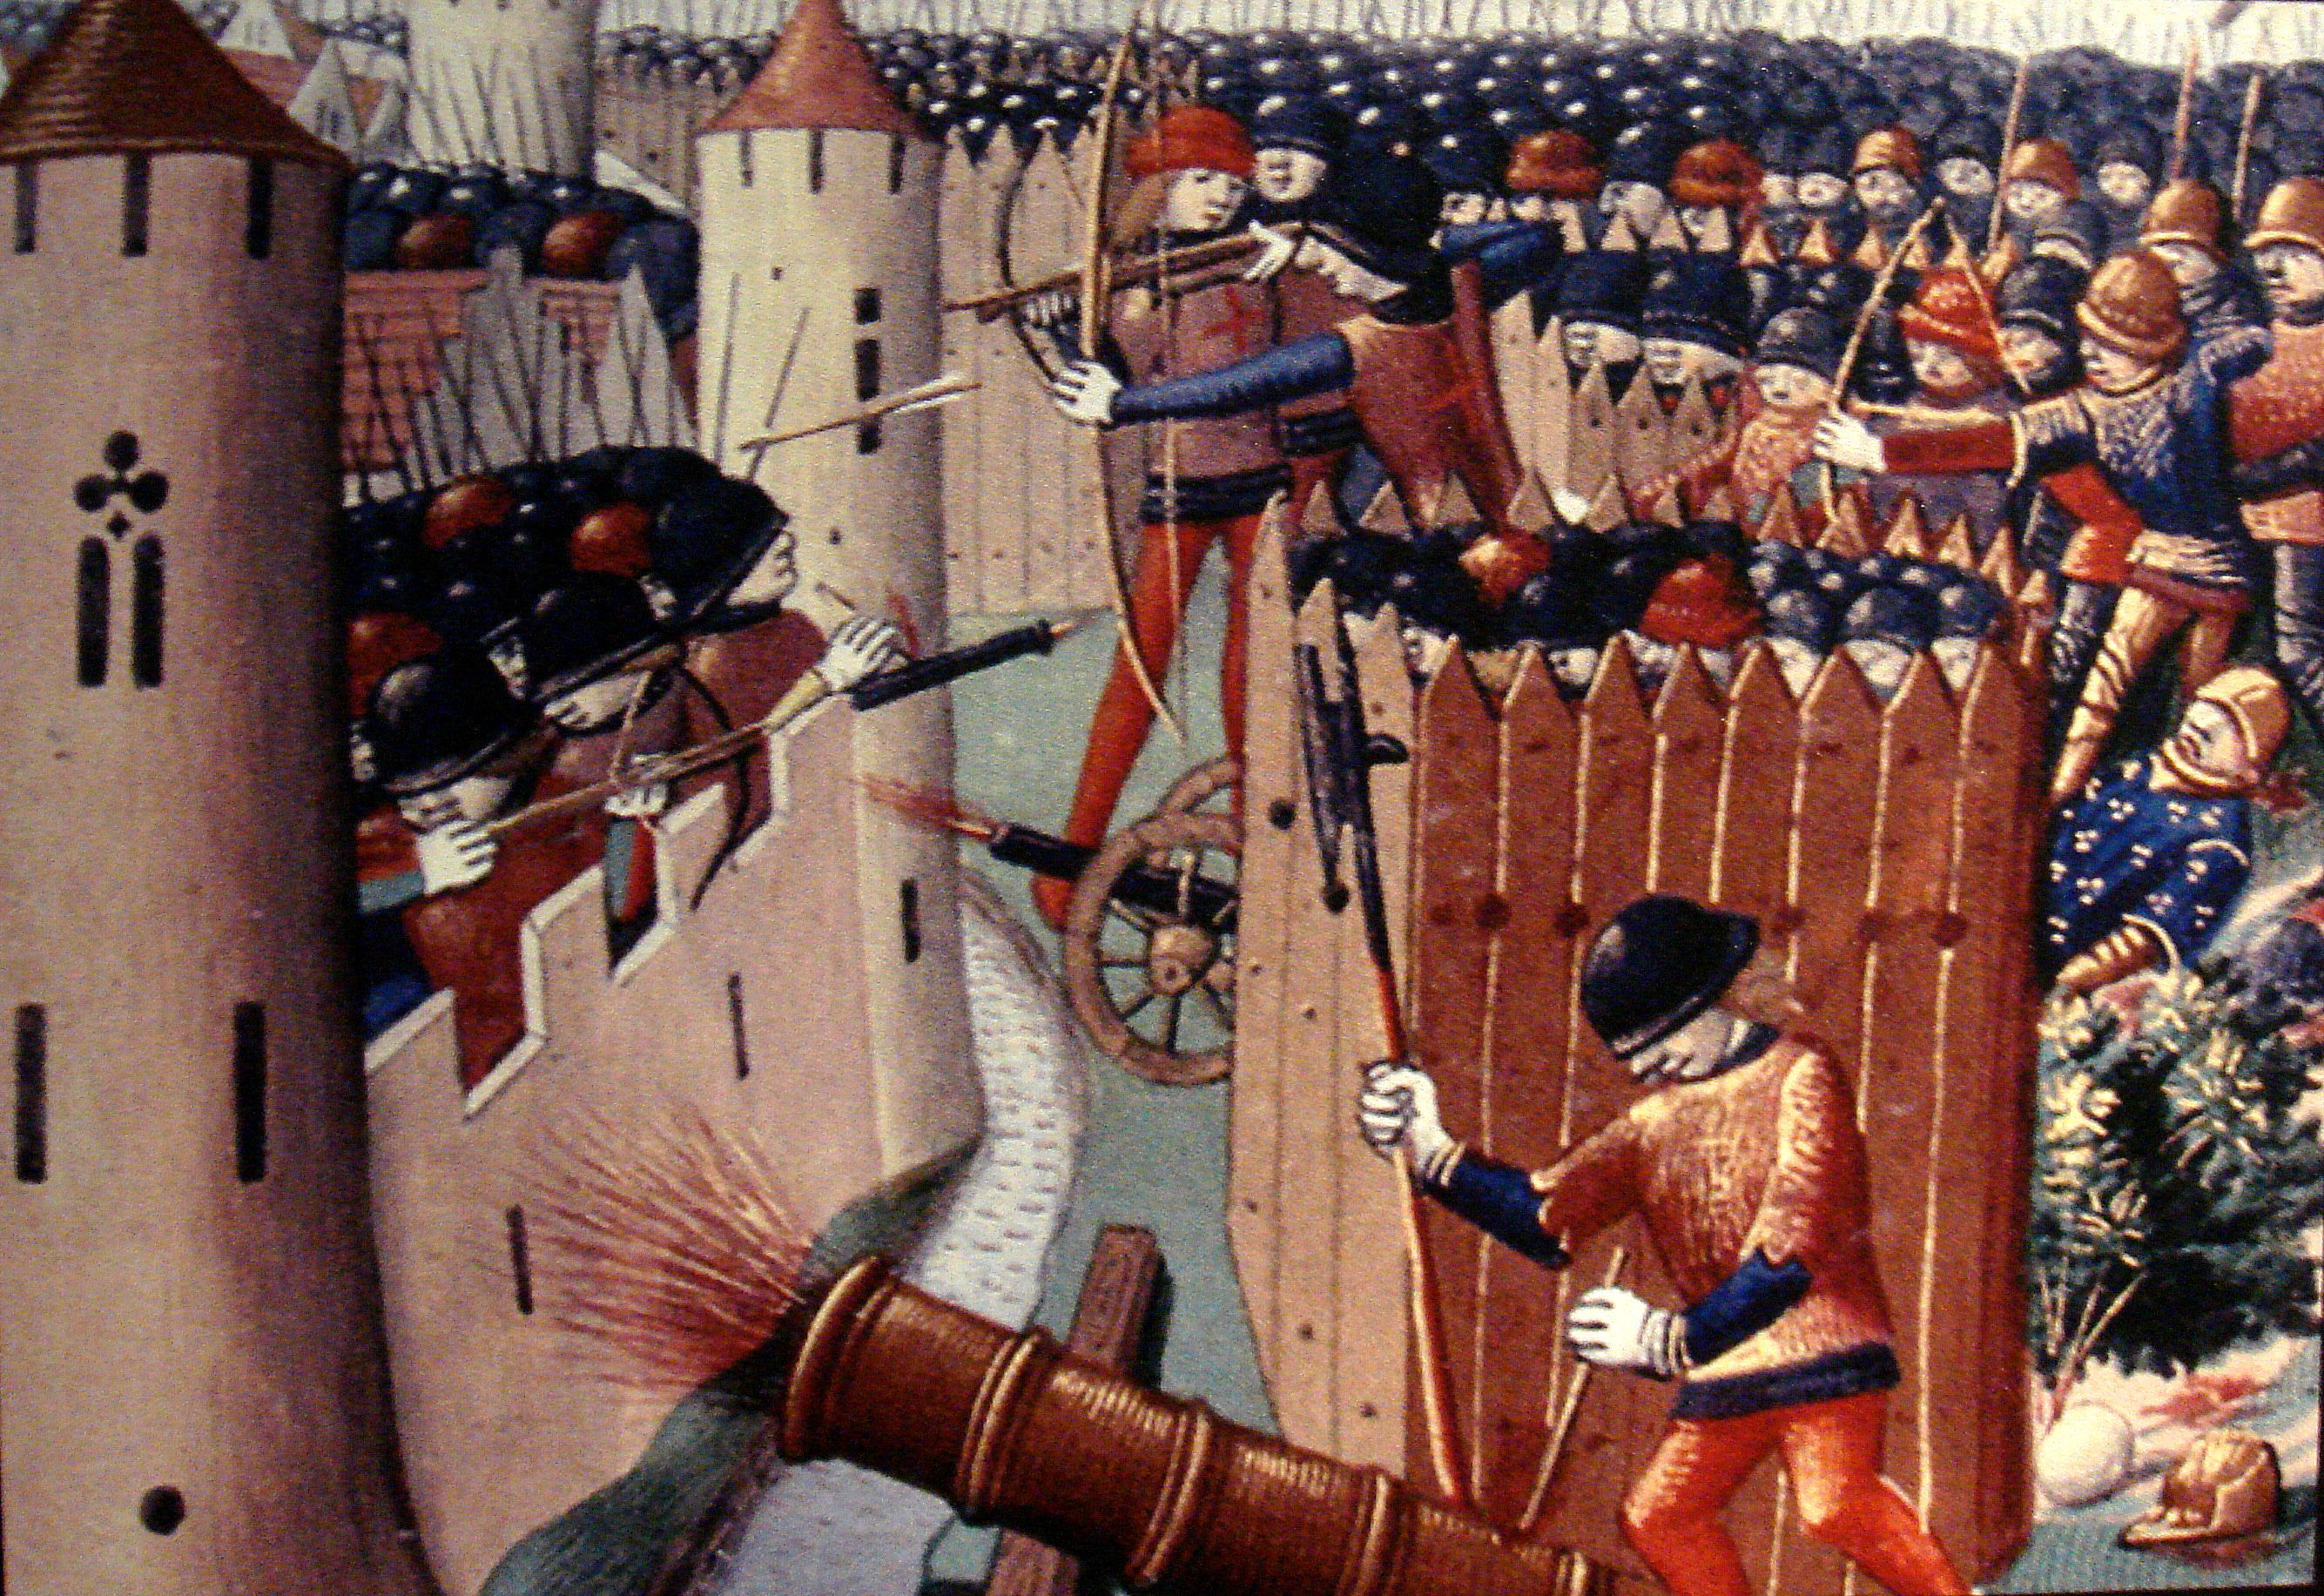 The Siege of Orleans